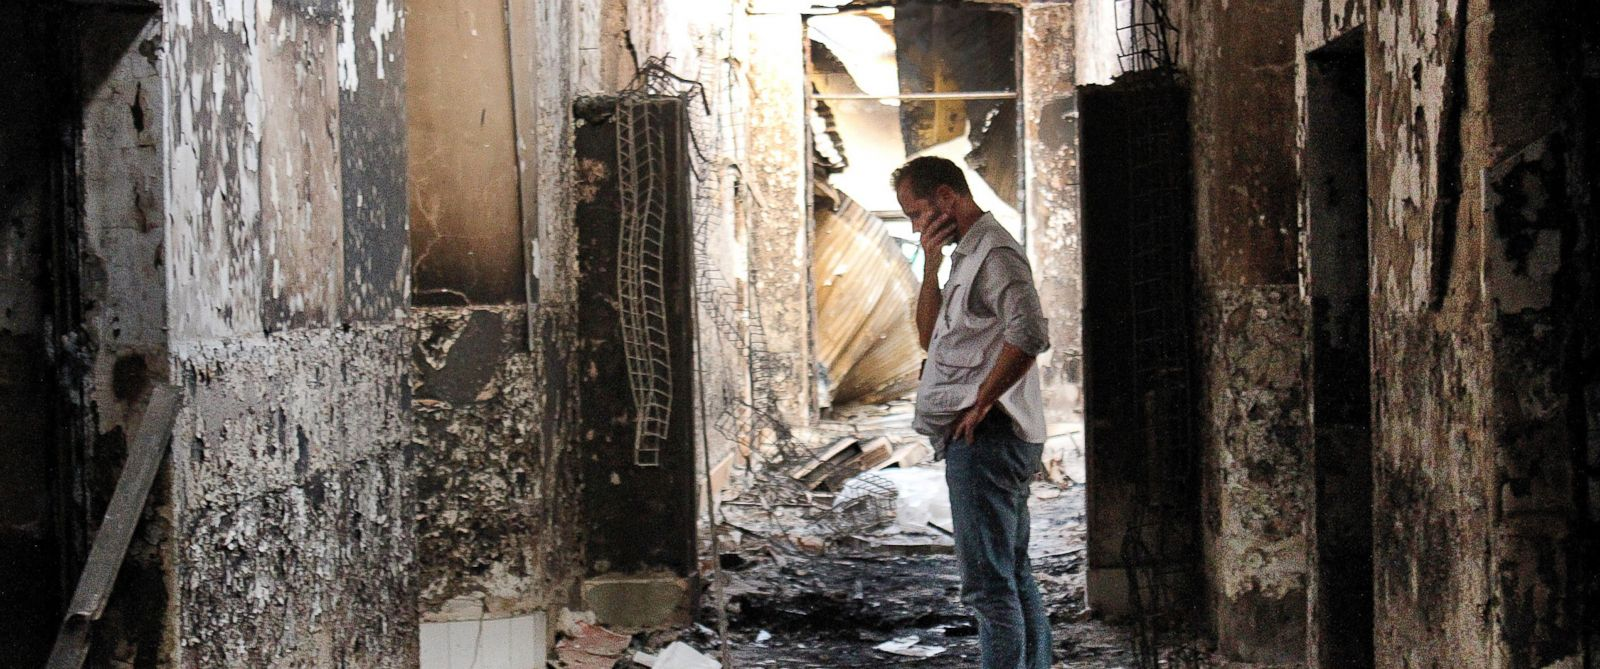 PHOTO: In this Oct. 16, 2015, file photo, an employee of Doctors Without Borders walks inside the charred remains of the organizations hospital after it was hit by a U.S. airstrike in Kunduz, Afghanistan.